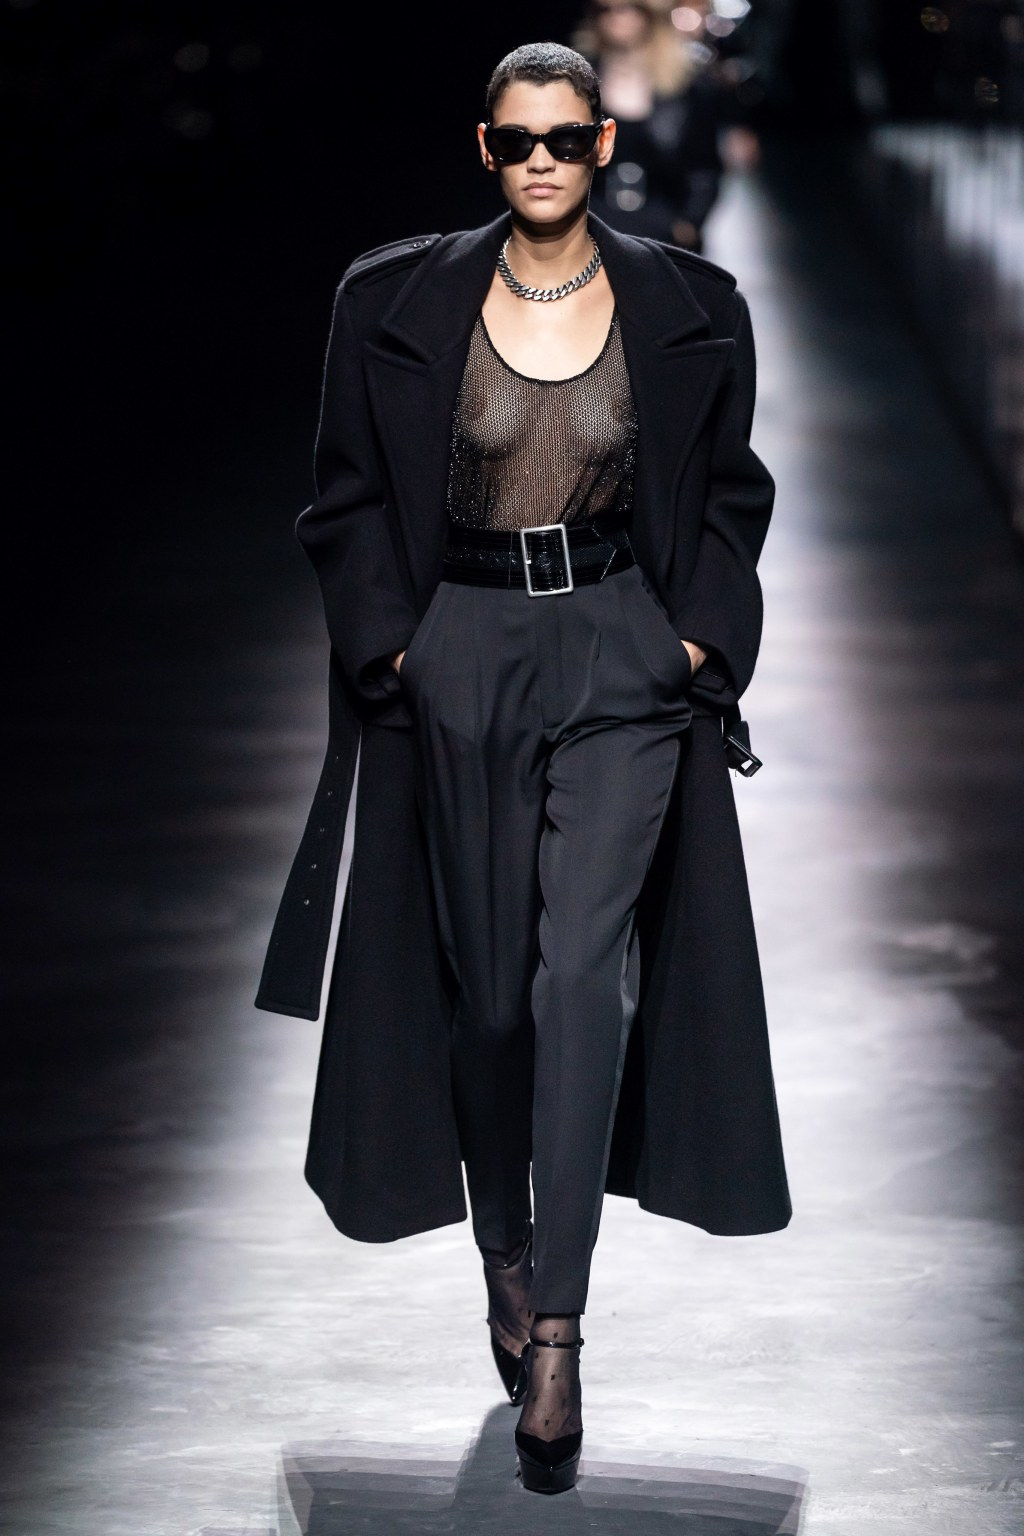 """285dbfa795b To shock people, force them to think"""" Yves Saint Laurent said to Vogue in  1971 after his famous"""" Scandal """"collection, inspired by an occupied France."""